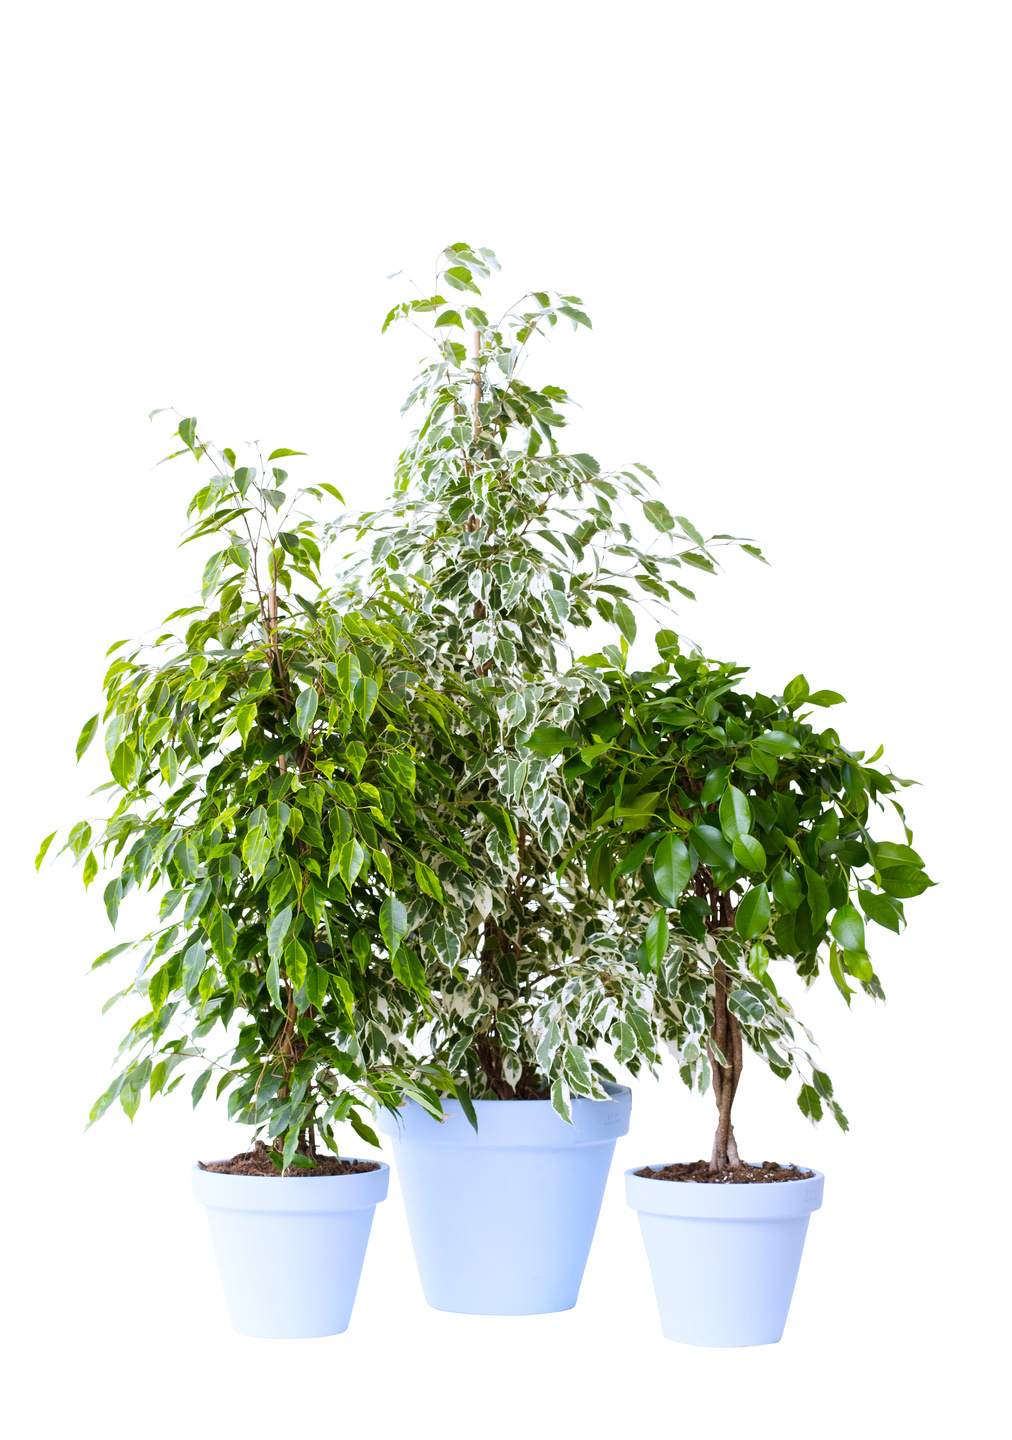 january 2017 ficus benjamina houseplant of the month flower council. Black Bedroom Furniture Sets. Home Design Ideas